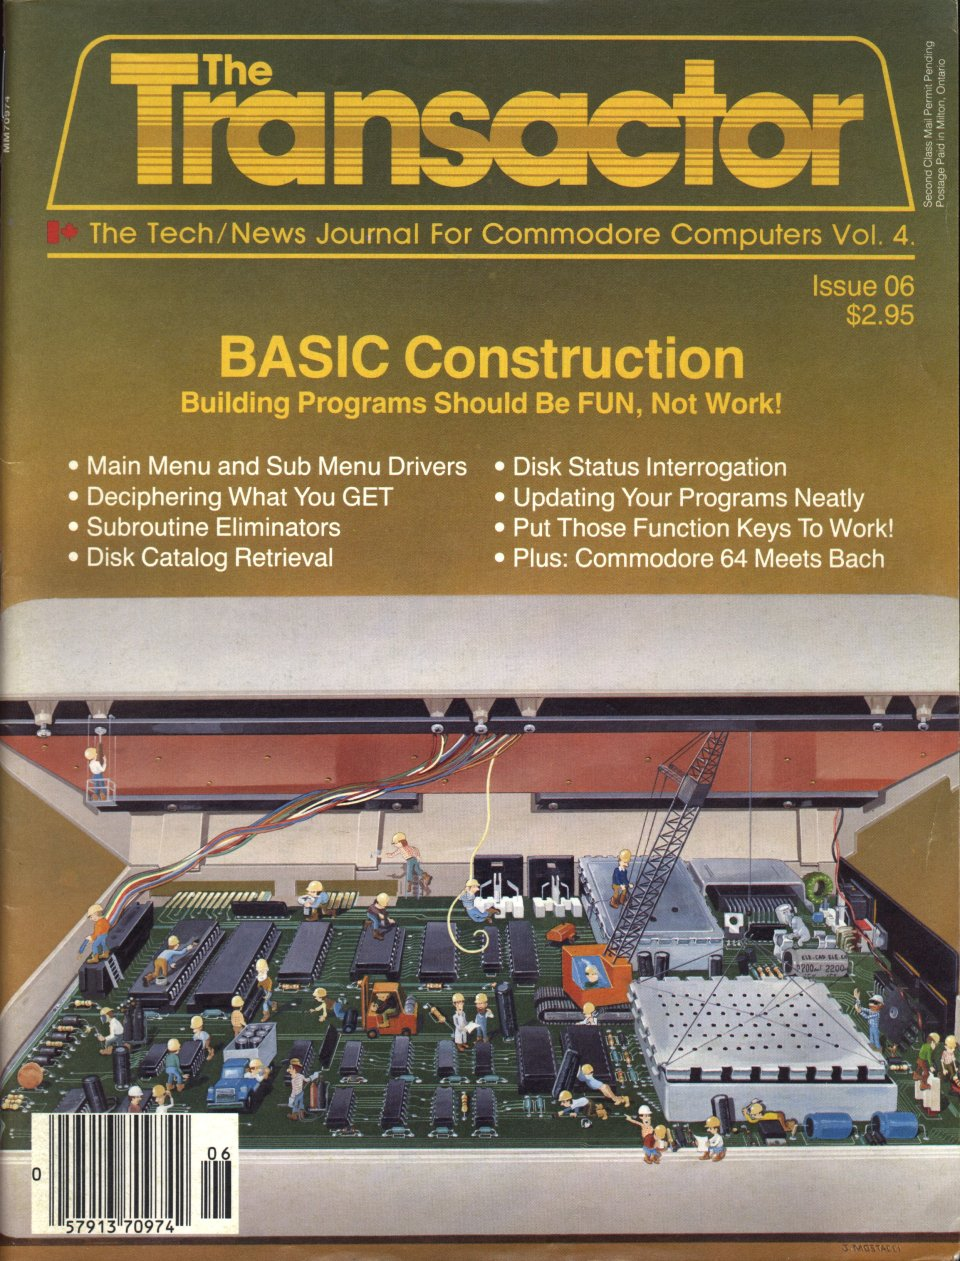 [Cover Page of The Transactor Volume 4, Issue 6: BASIC Construction: Building Programs Should Be FUN, Not Work!]